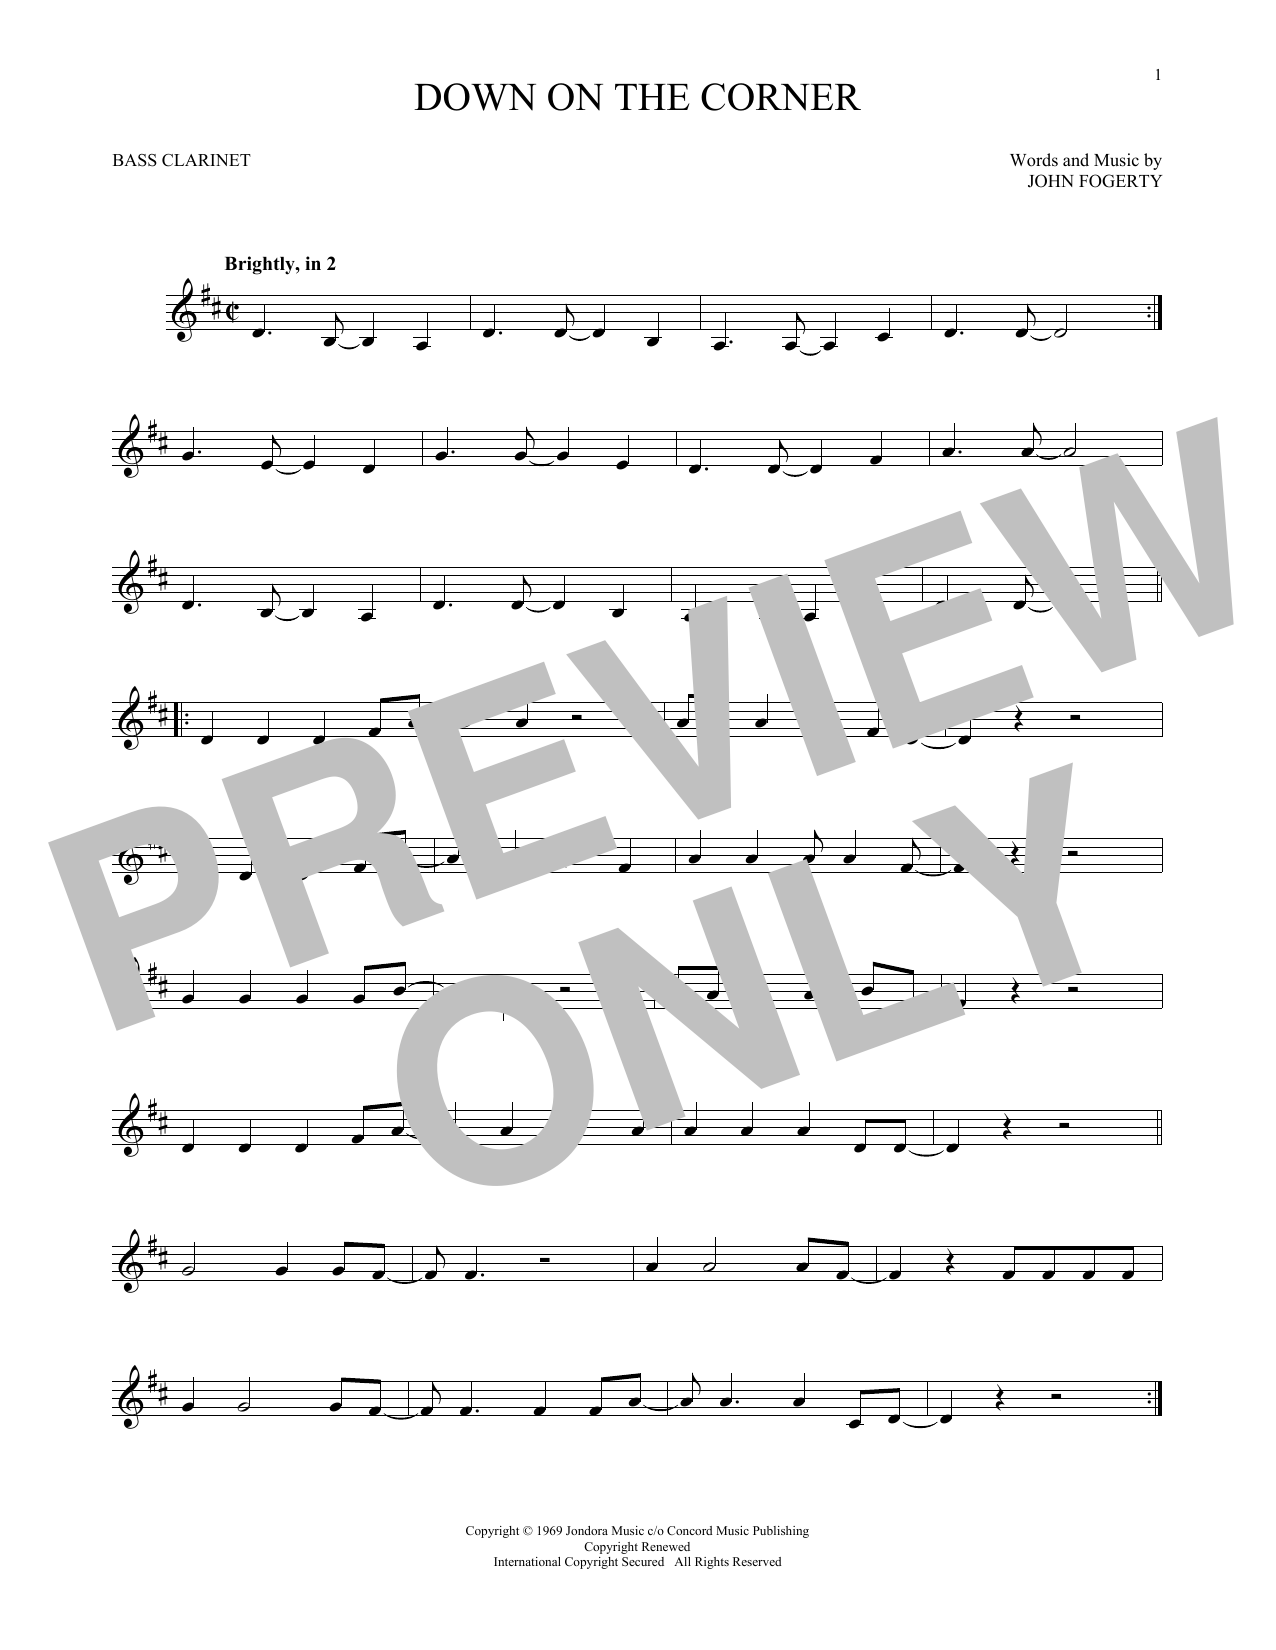 Down On The Corner (Bass Clarinet Solo)